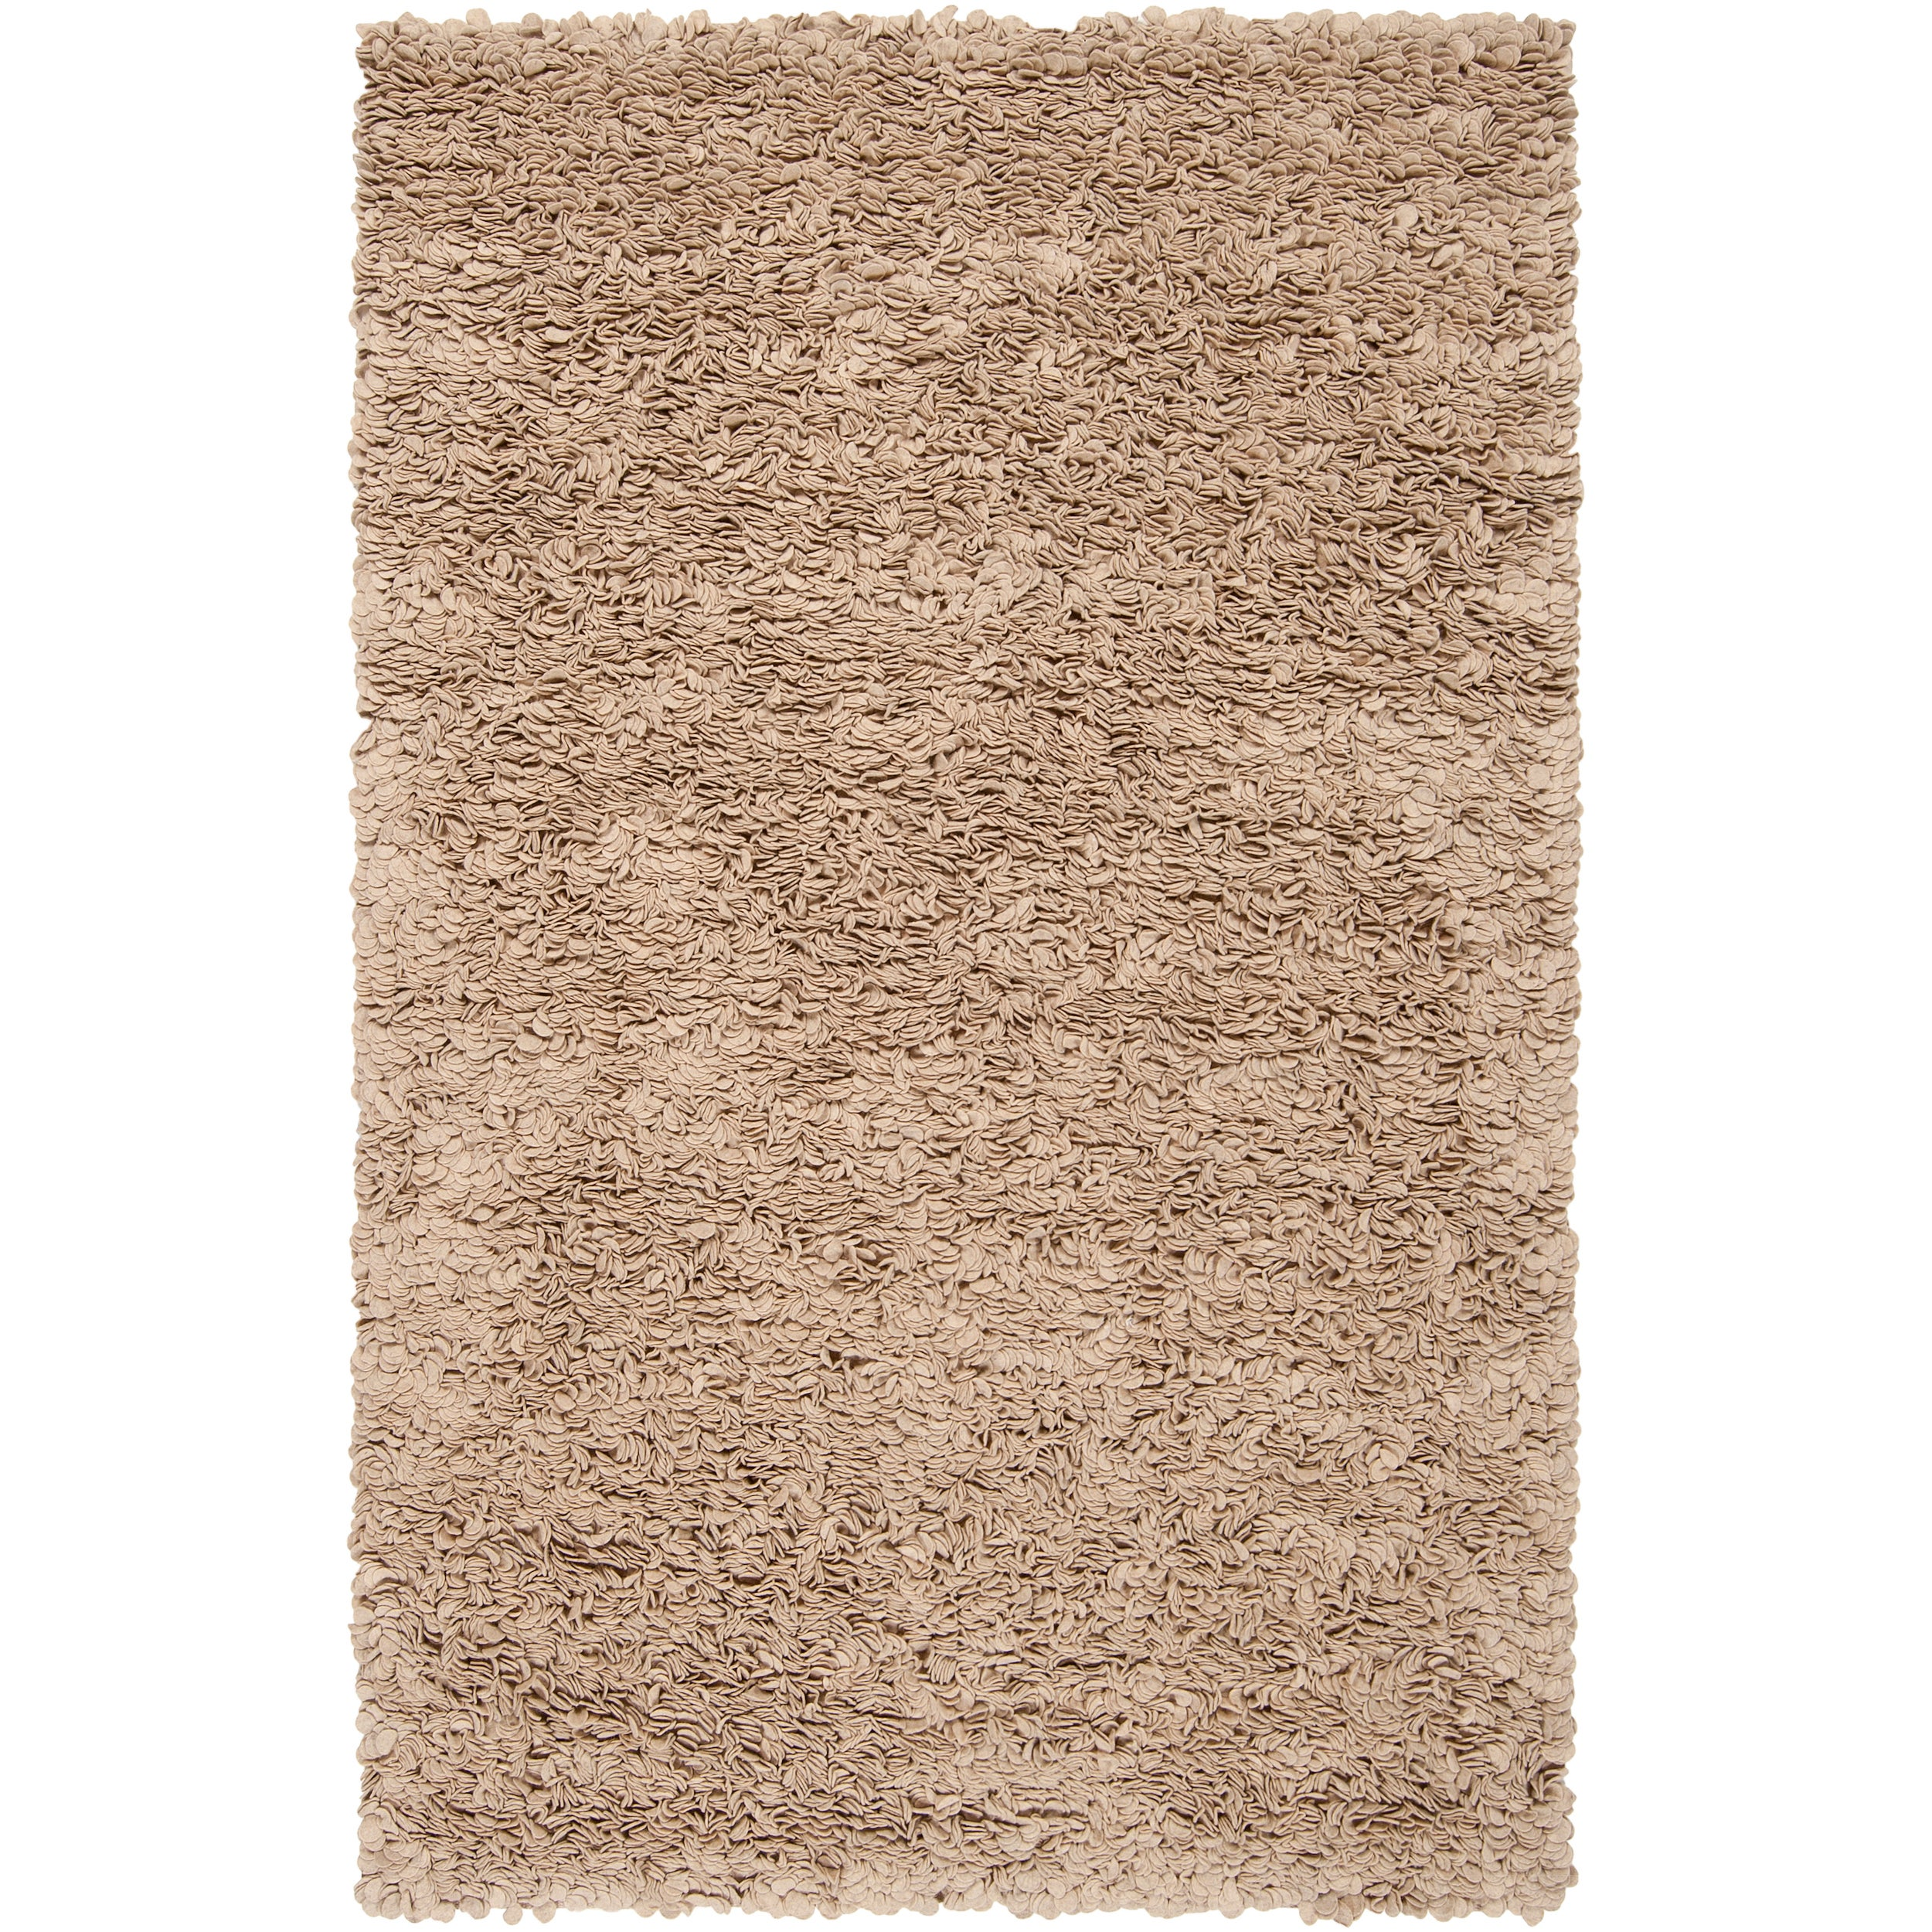 Hand-woven Tan Caparo Street Plush Shag New Zealand Felted Wool Rug (5' x 8')